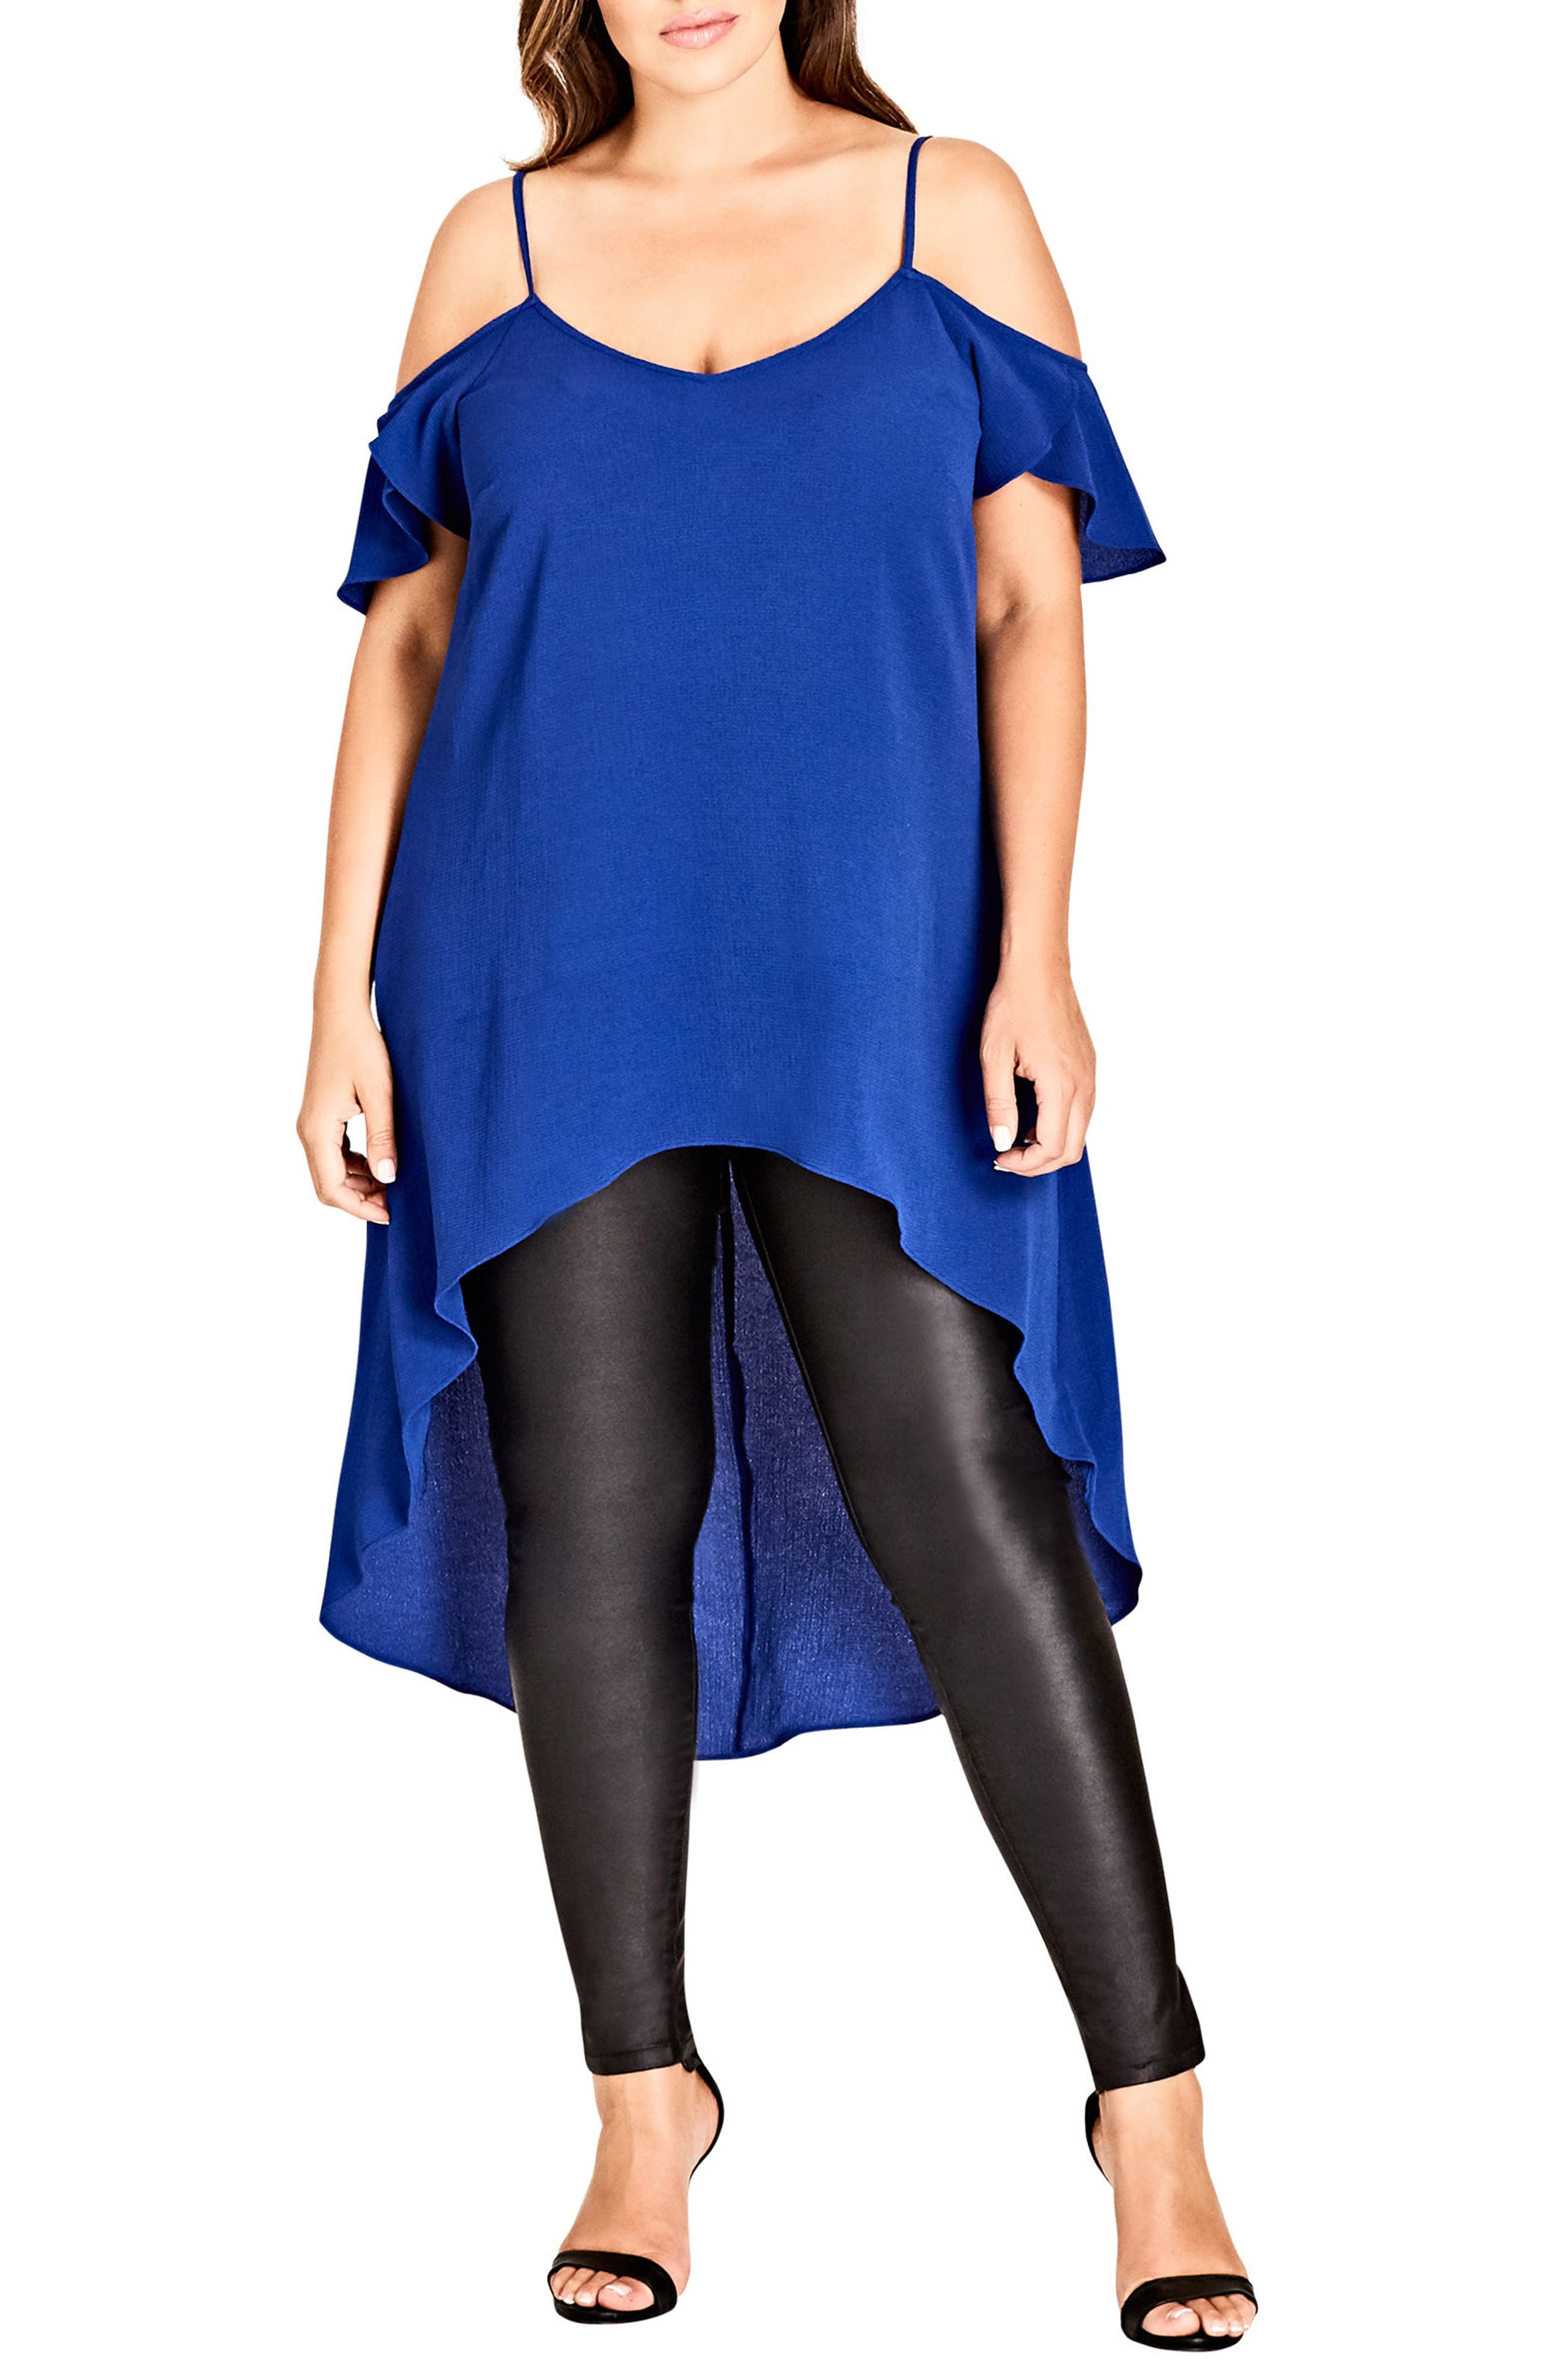 Charmer Off Shoulder High/Low Top,                             Main thumbnail 1, color,                             Lapis